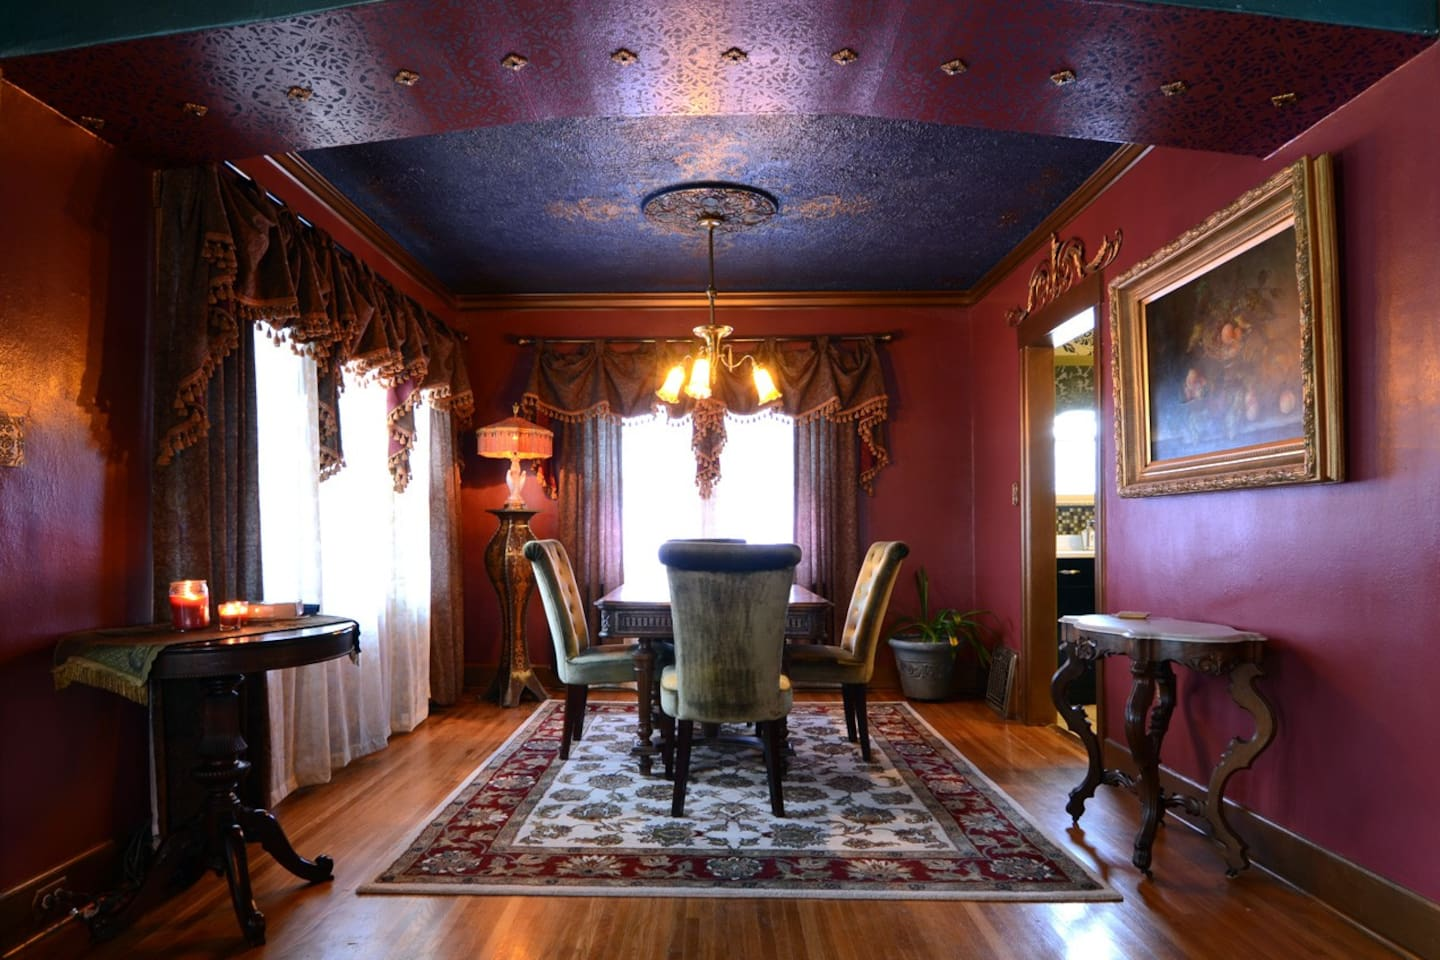 Spanish/Baroque Style home replete with antiques and paintings fit for a museum!